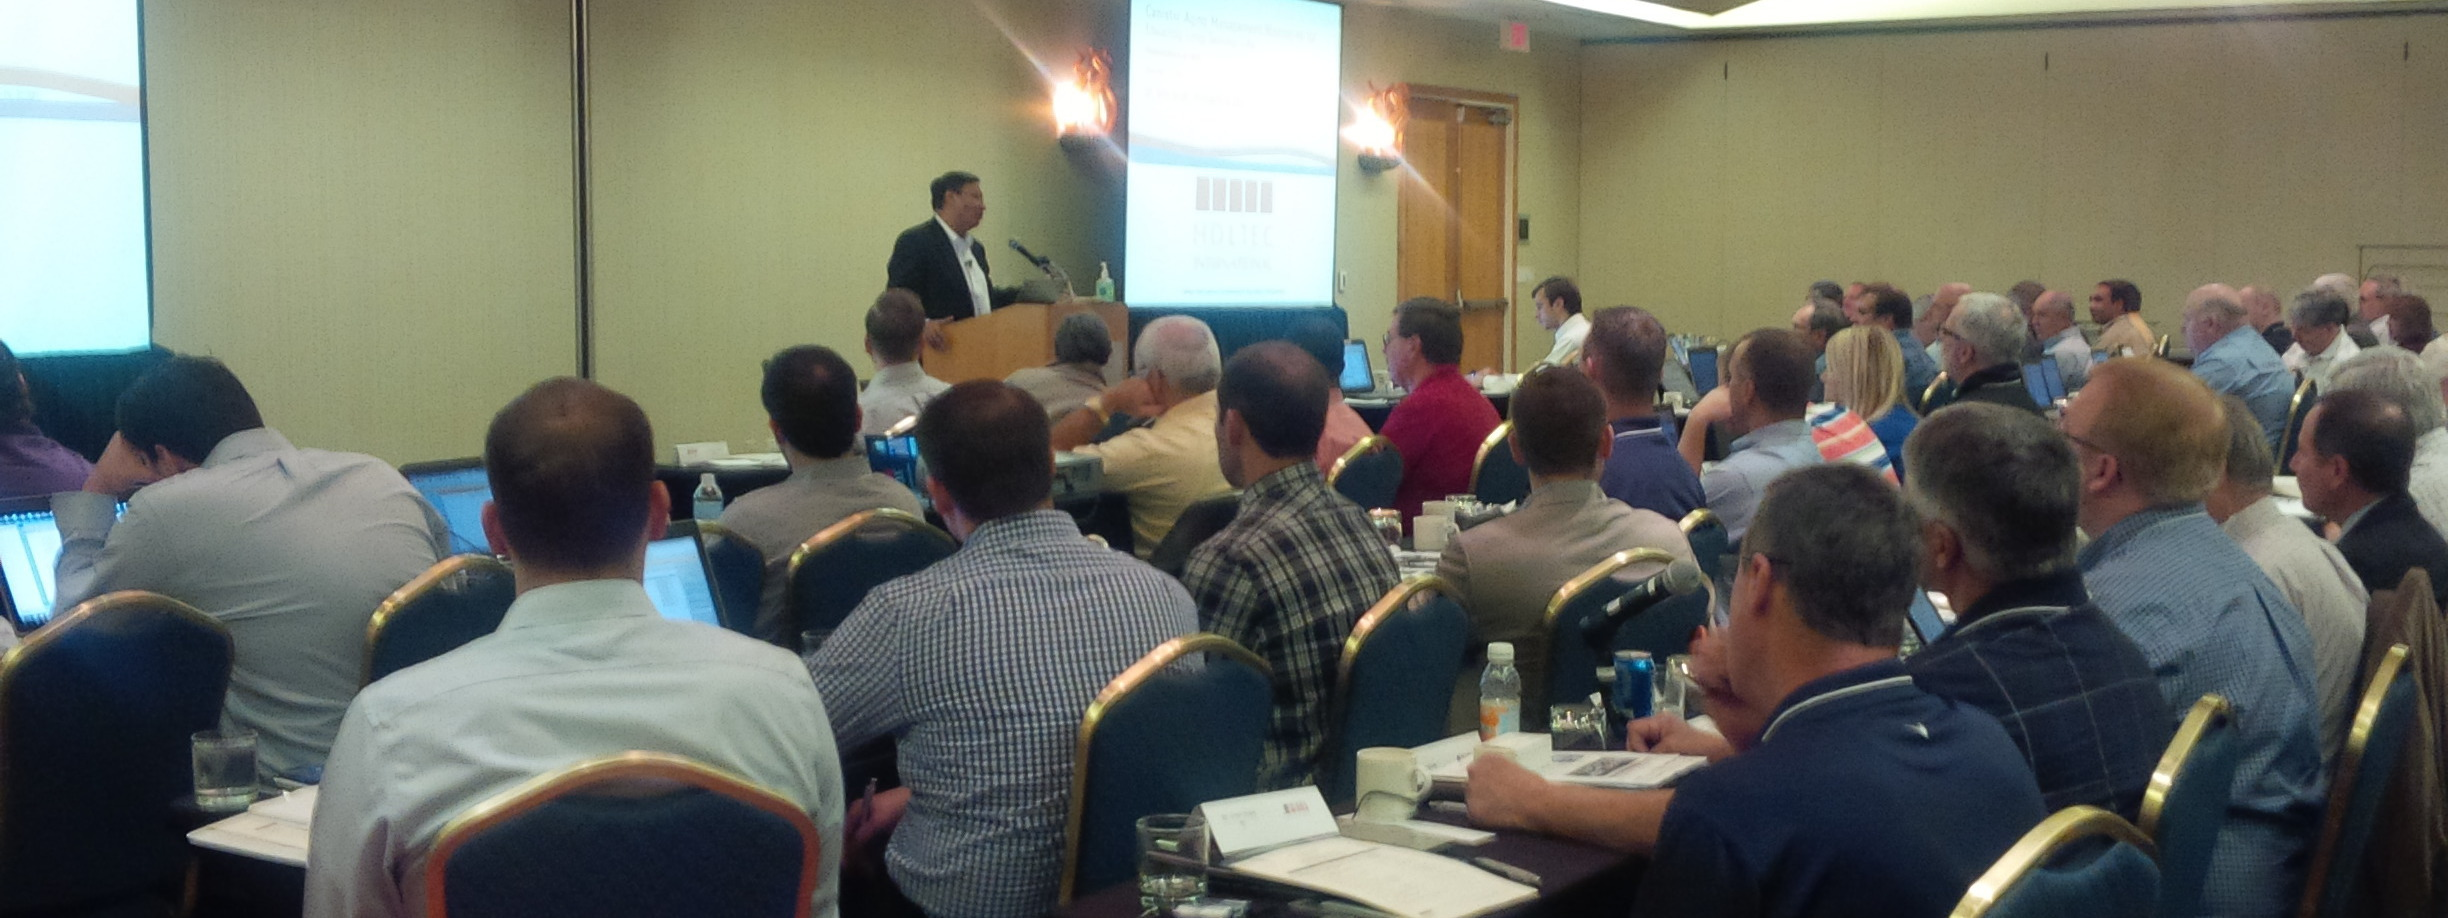 HUG's 2014 Fall Meeting Celebrates the ALARA and Safety of Recent HI-STORM Loading Campaigns and Discusses Solutions for Emerging Dry Storage Issues